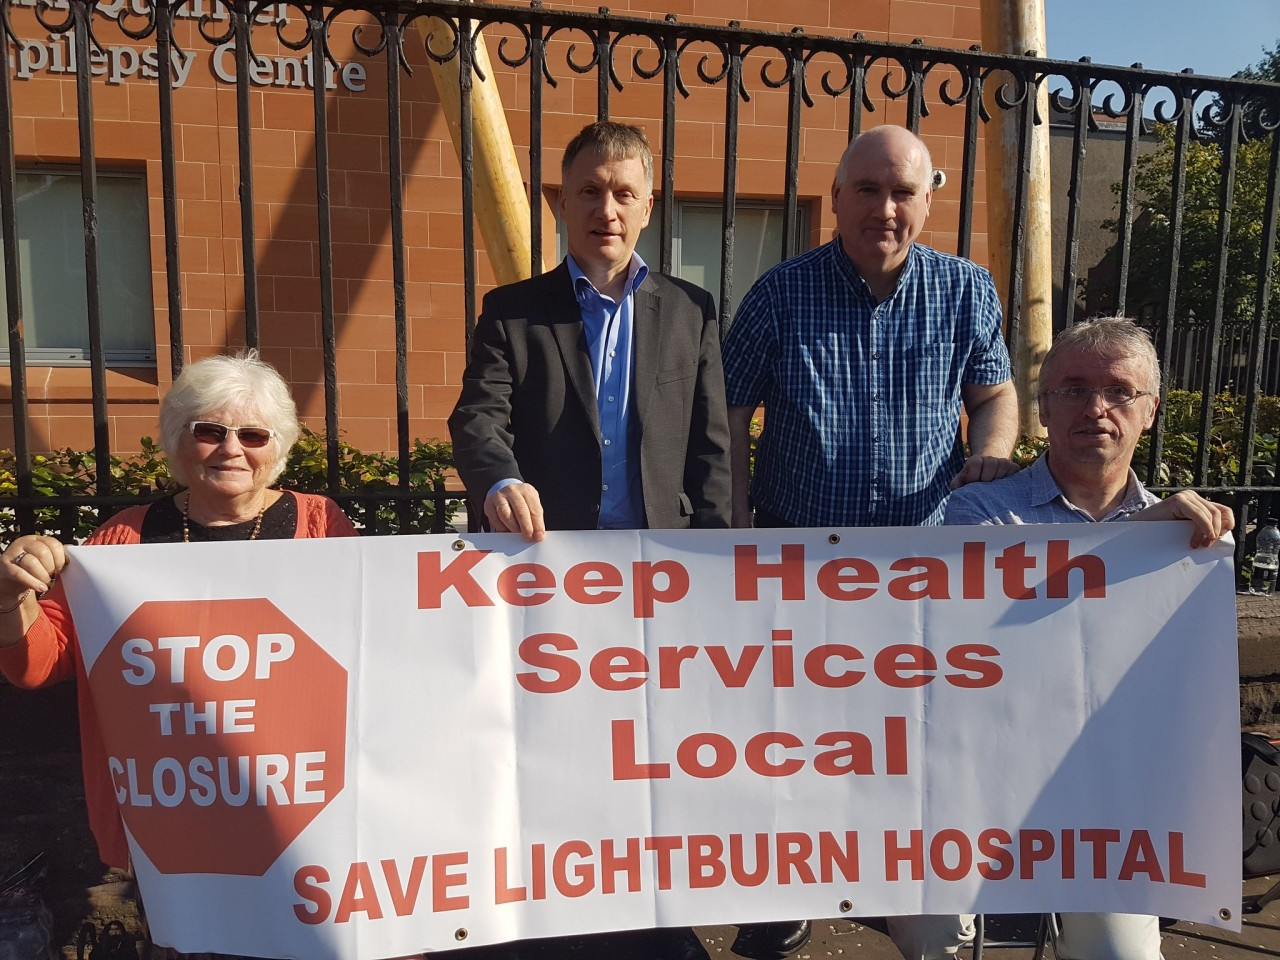 Lightburn Hospital - Health Board is failing in its duty of care to the population of the East End of Glasgow. It has a case to answer.